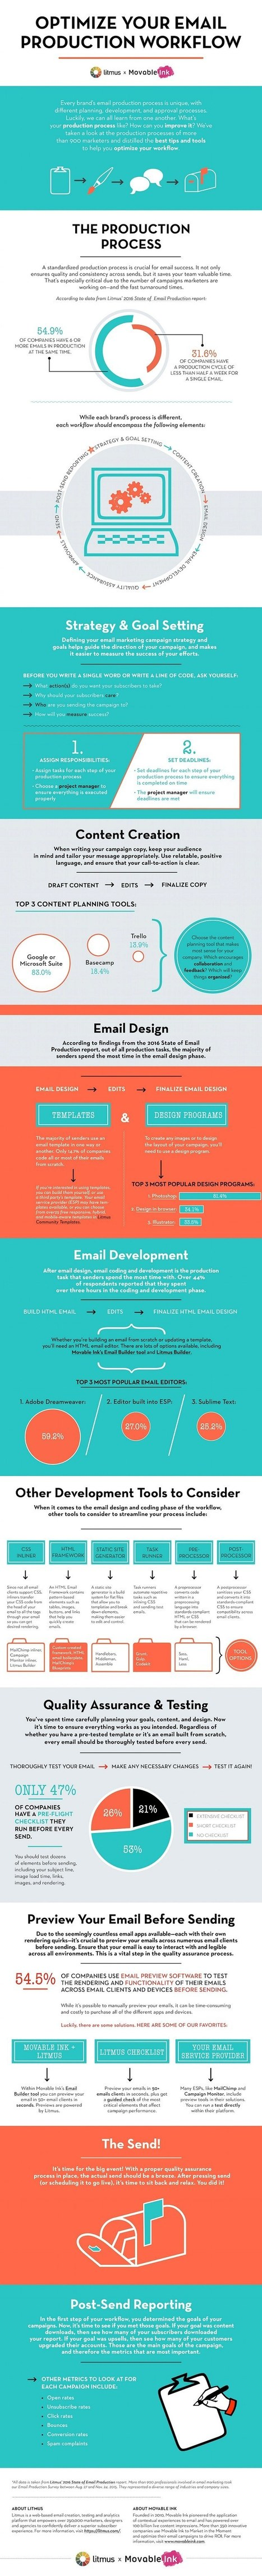 How to Optimize Your Email Production Workflow [Infographic] | Integrated Brand Communications | Scoop.it